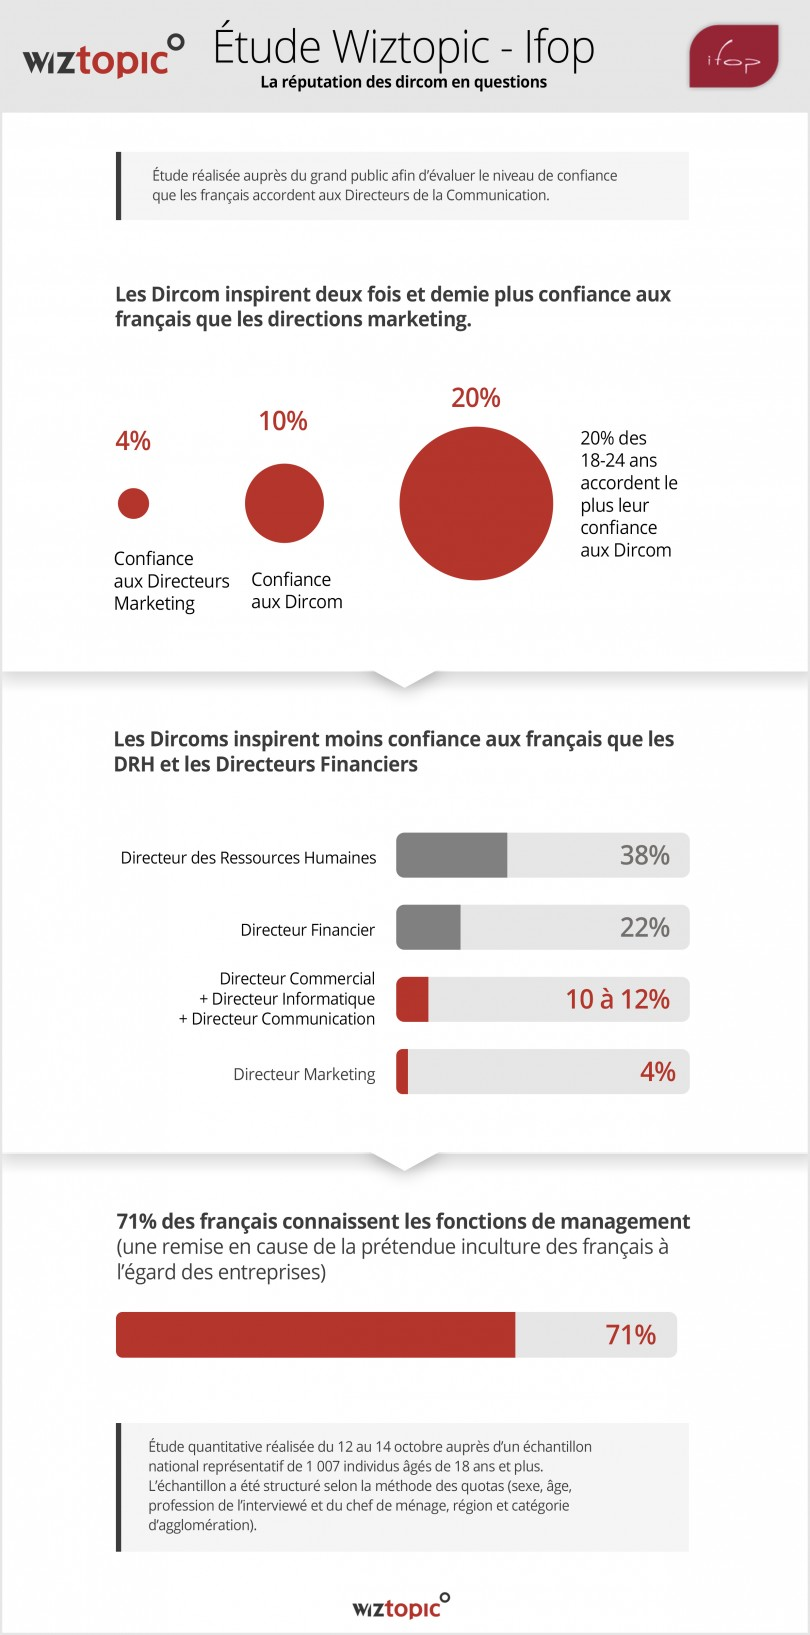 infographie-315-etude-wiztopic-ifop